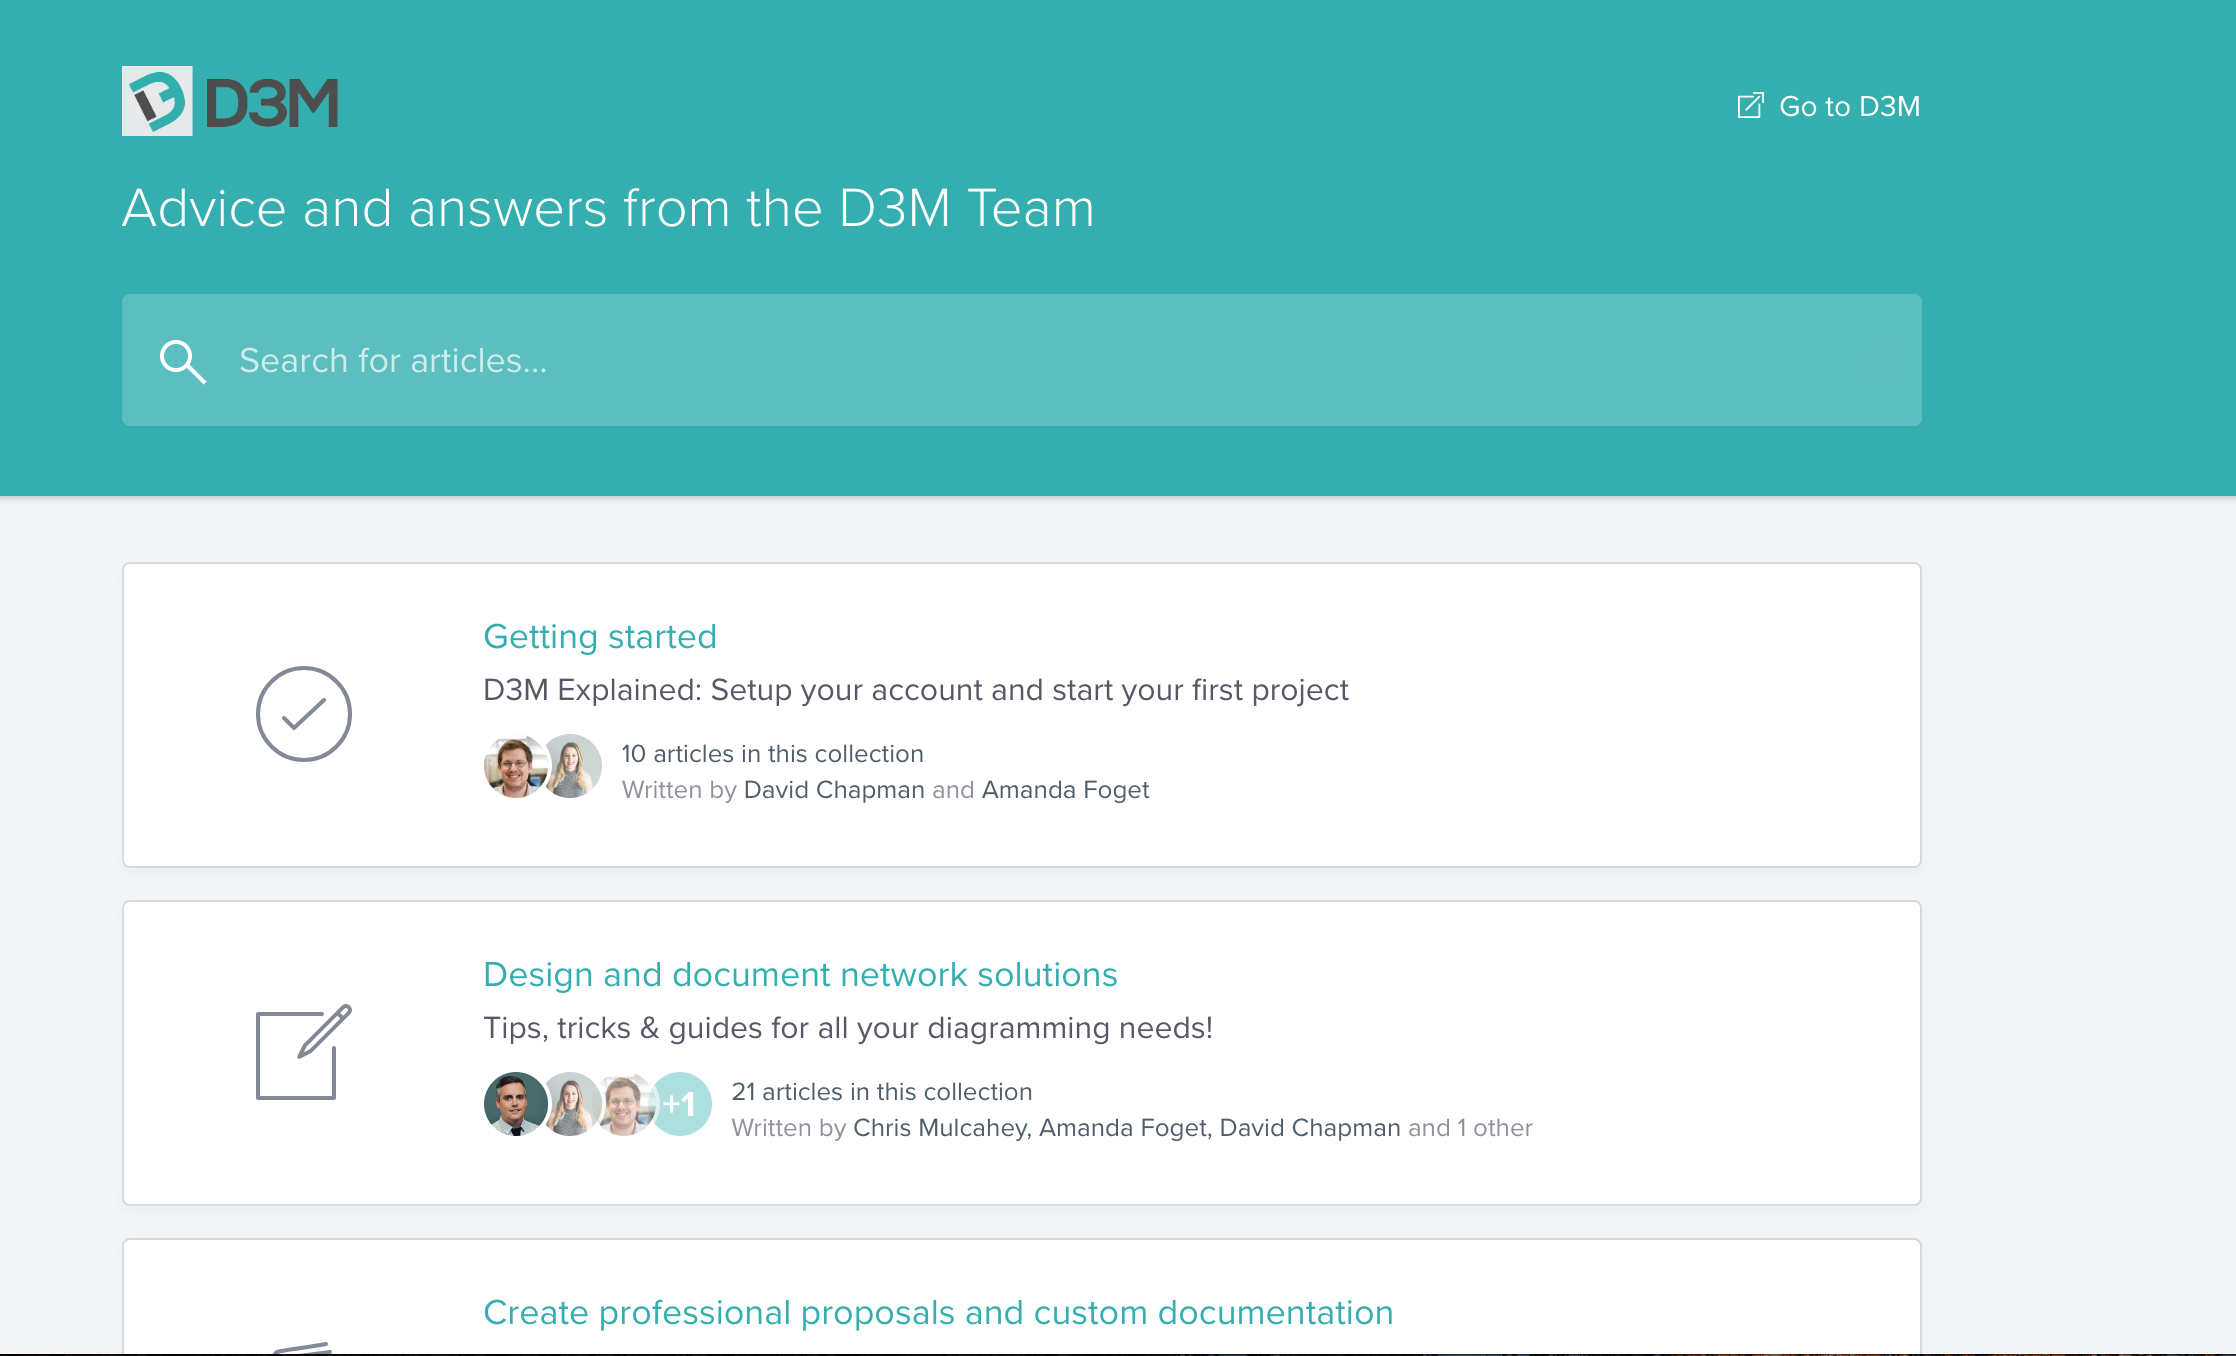 Find Answers to All Your Questions with the D3M Help Center